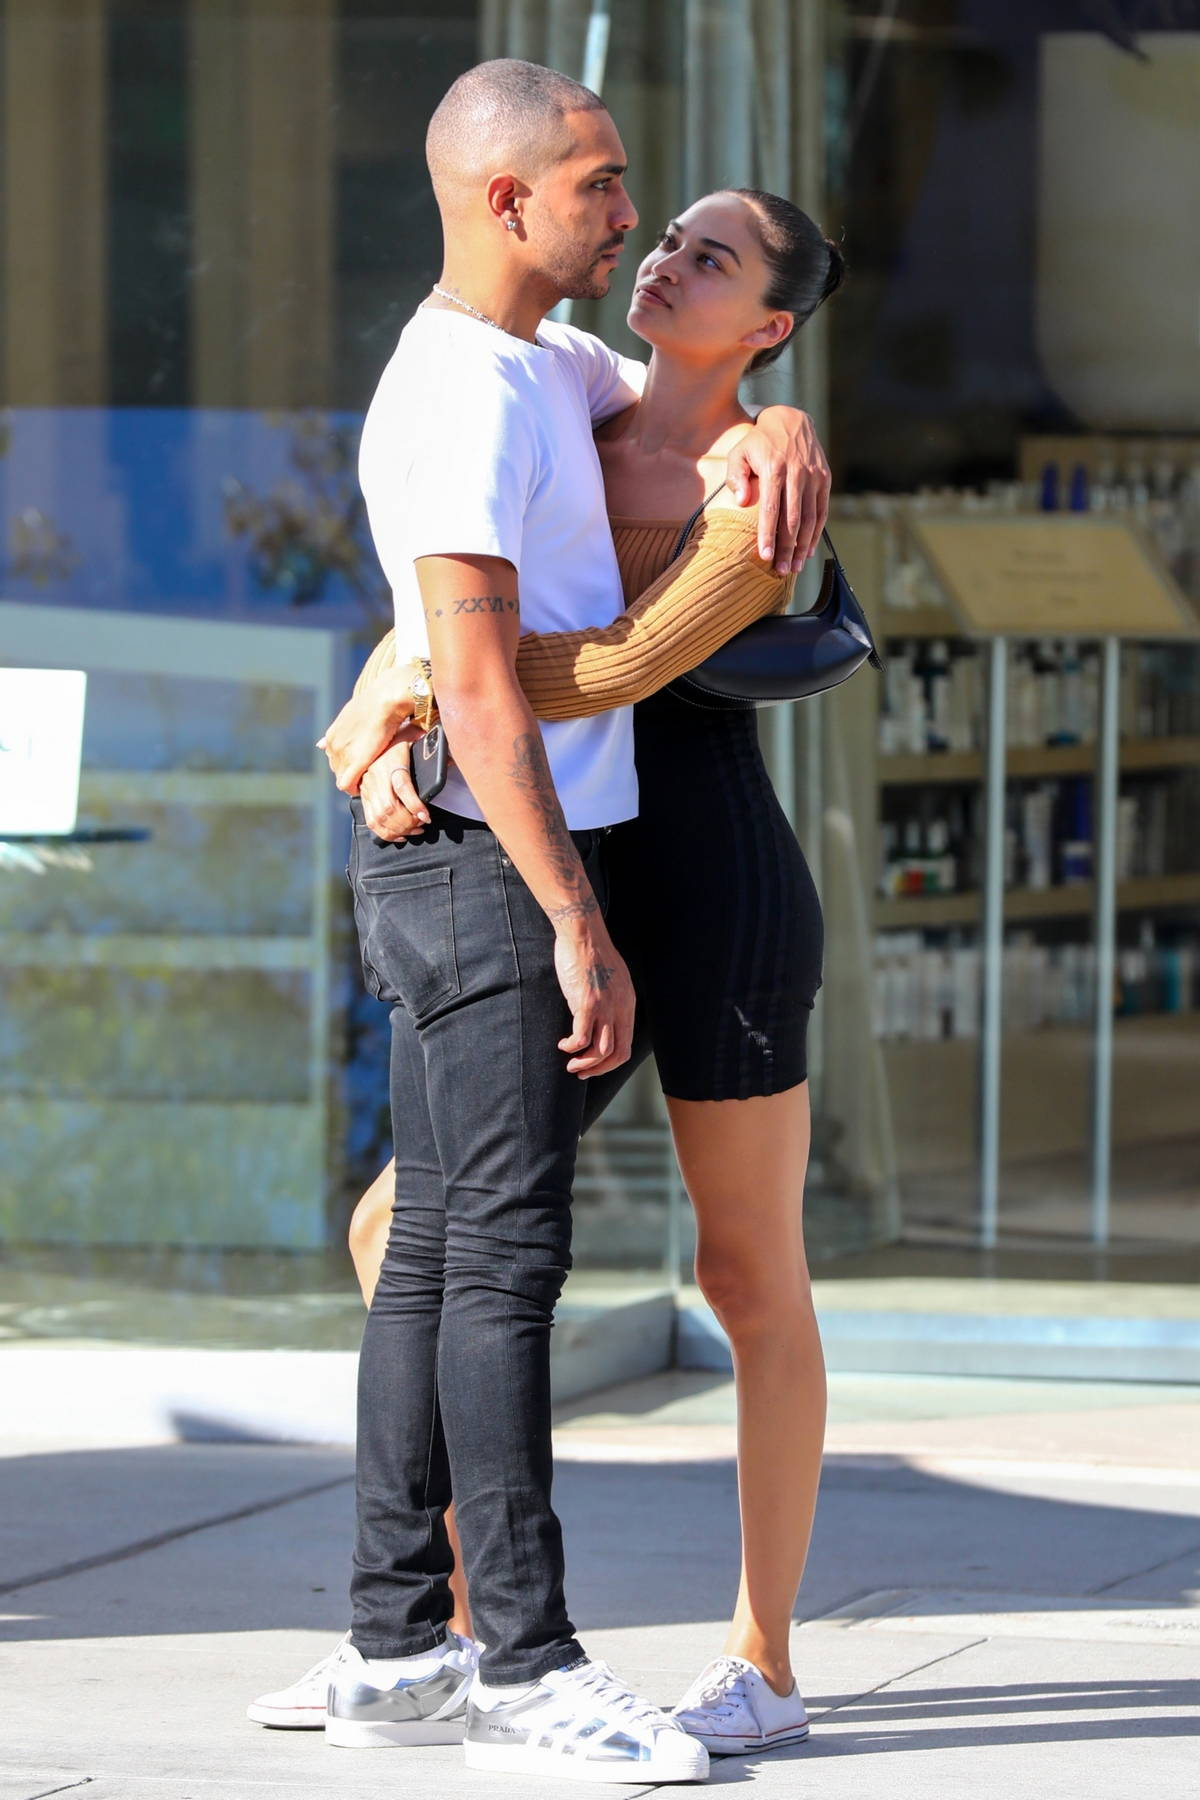 Shanina Shaik shares a loving kiss and embrace with boyfriend Matthew Adesuyan while out to dinner in Beverly Hills, California